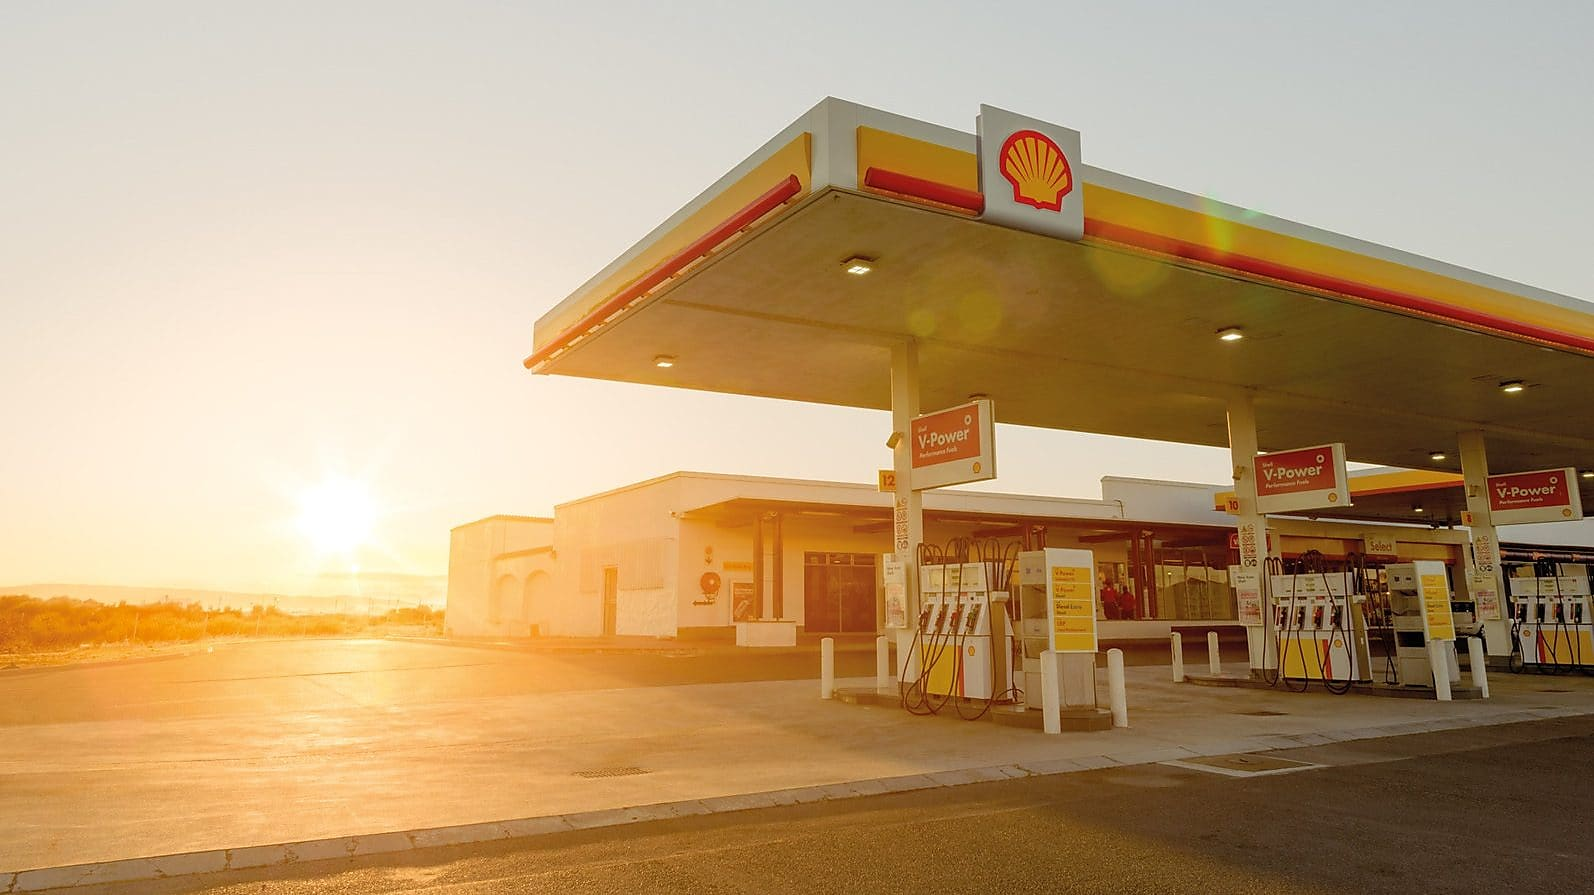 Shell fuel prices